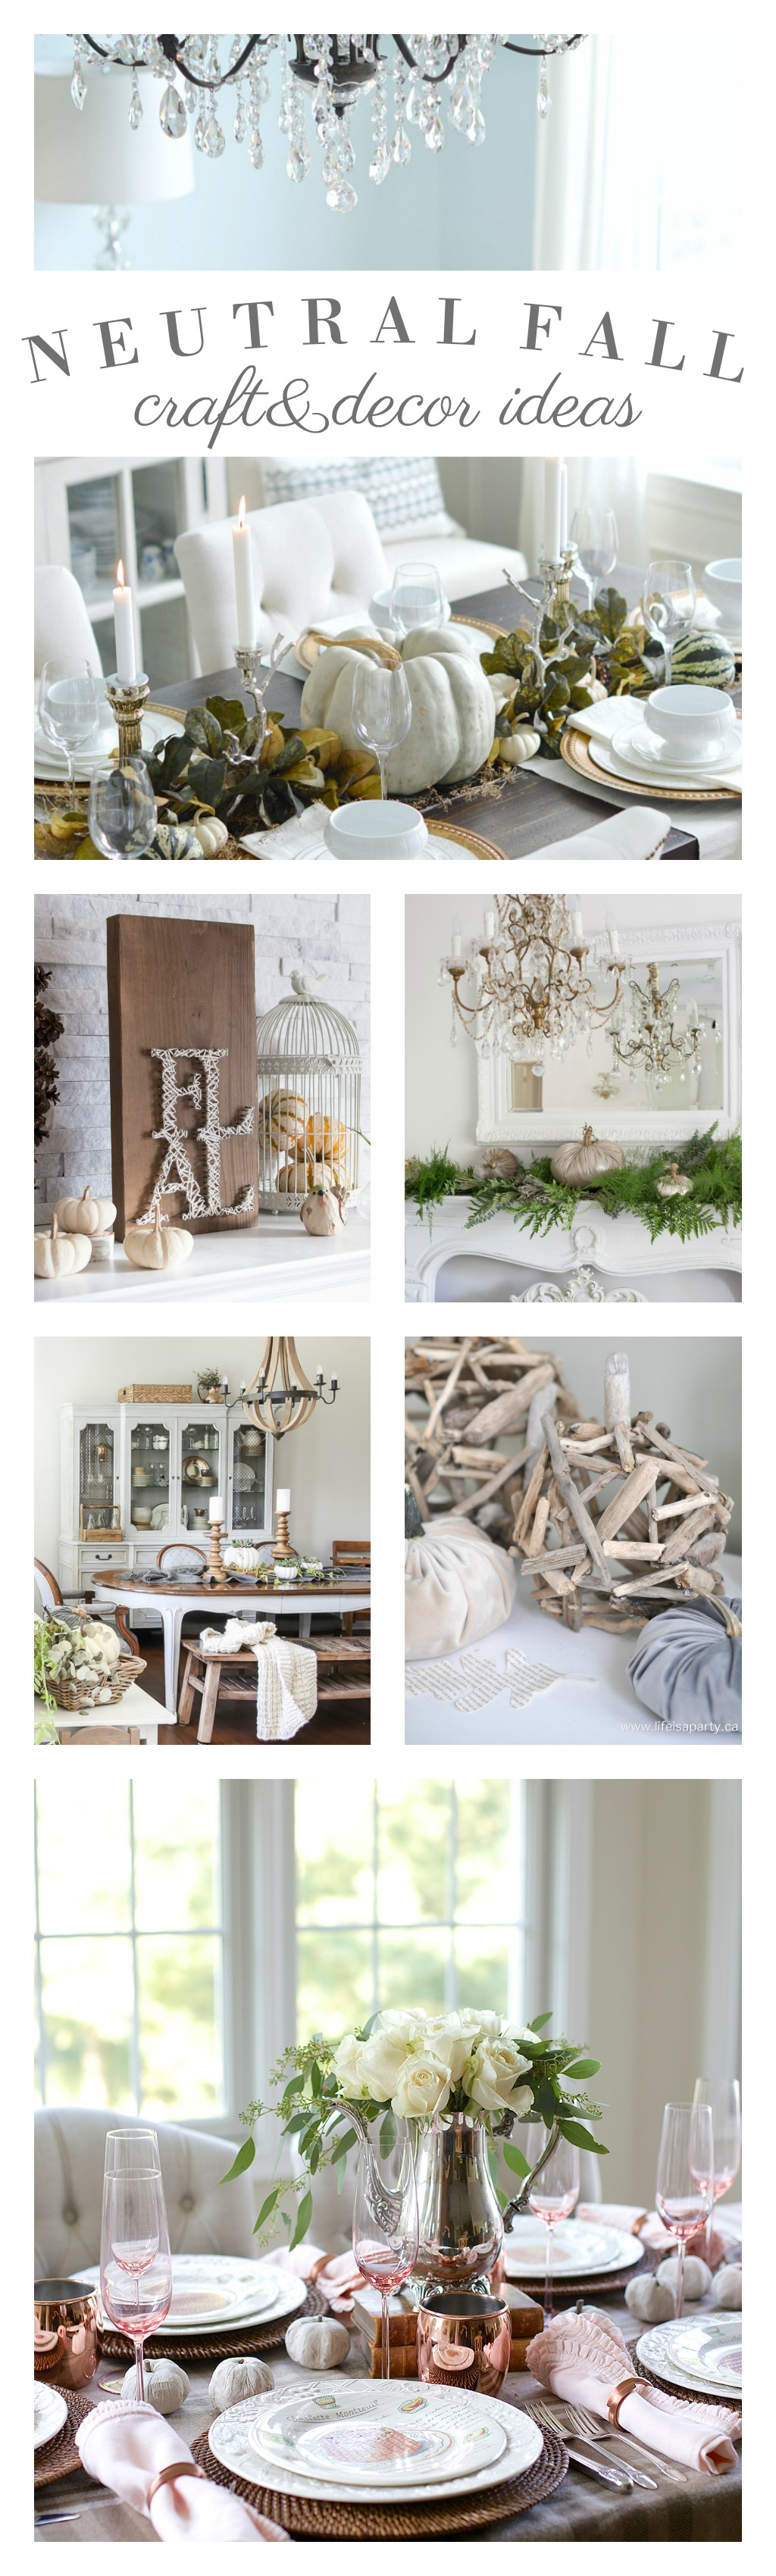 Neutral Fall Home Decor and Craft Decorating Ideas